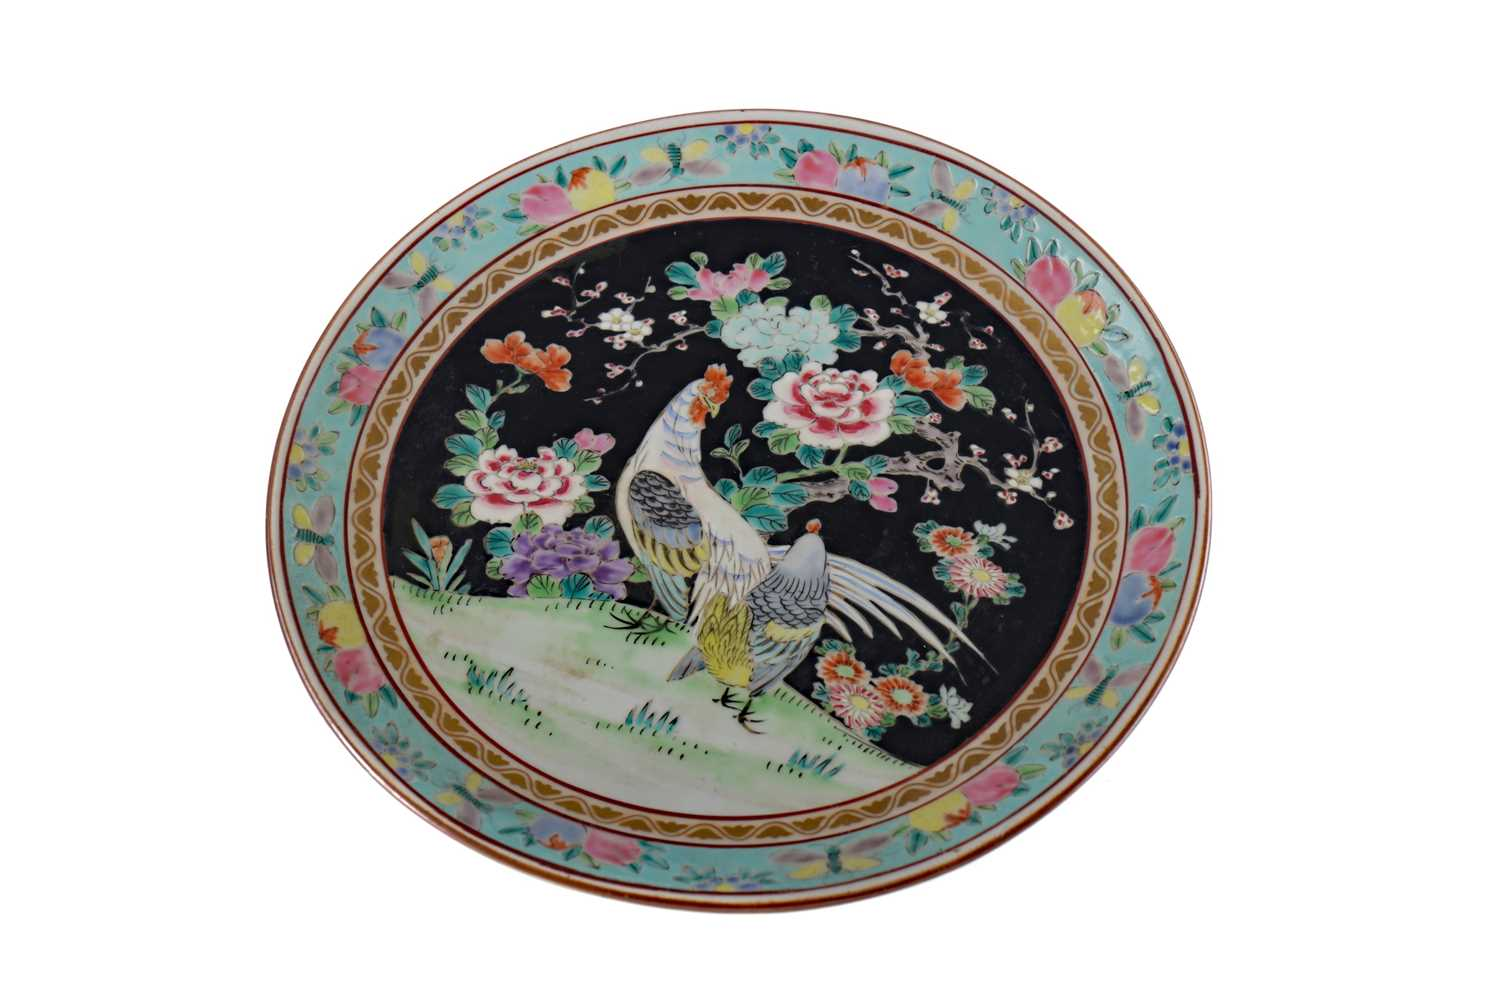 Lot 833 - AN EARLY 20TH CENTURY CHINESE CIRCULAR PLAQUE